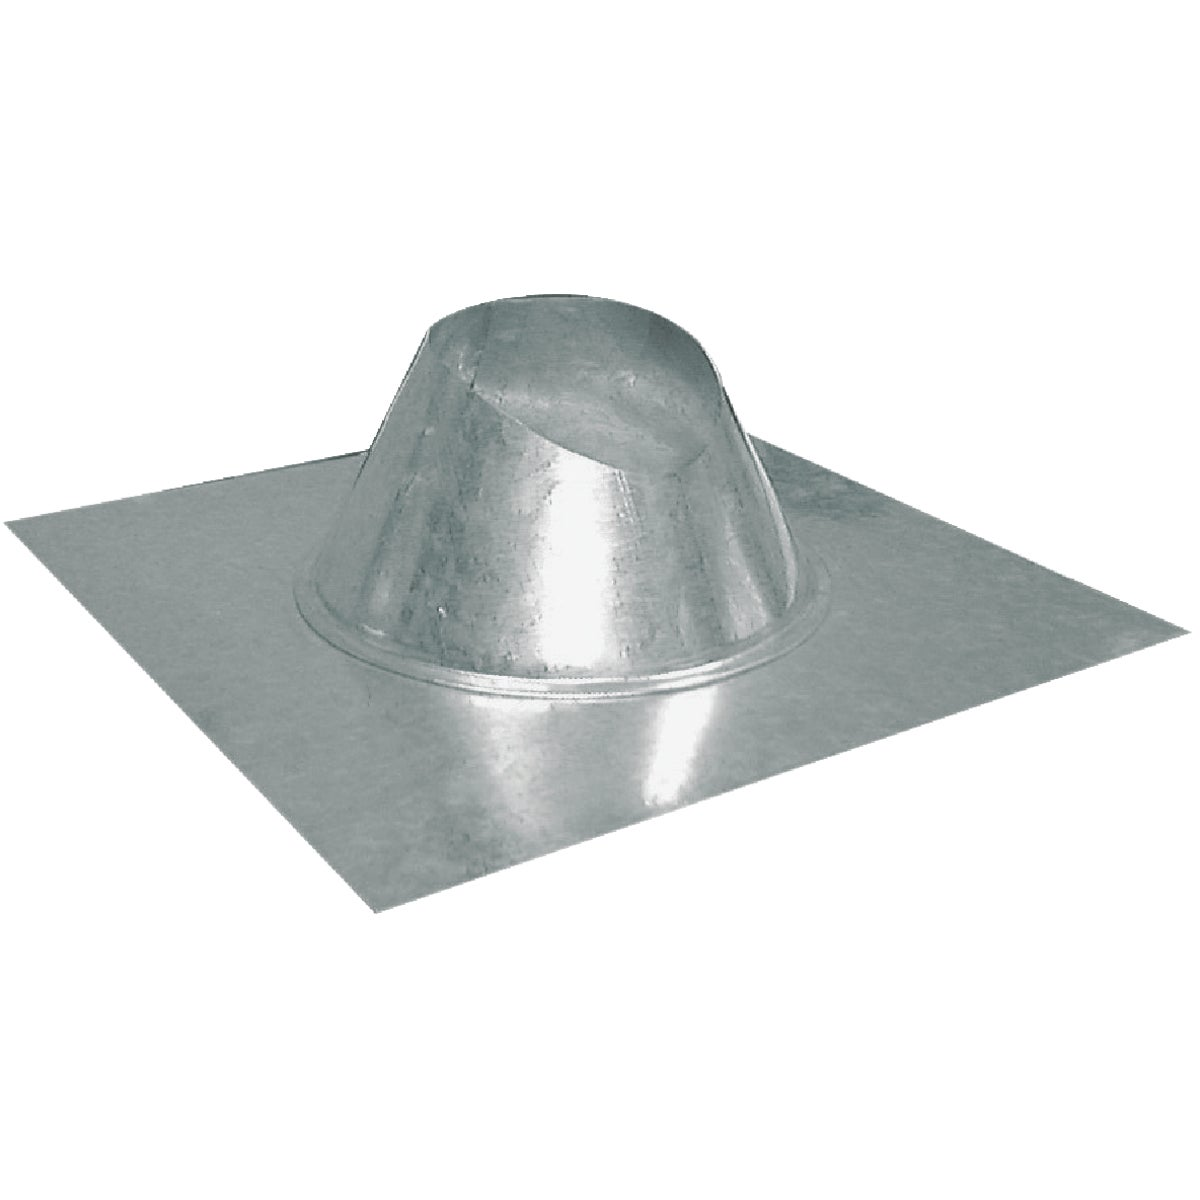 "8"" GALV ROOF FLASHING - GV1387 by Imperial Mfg Group"